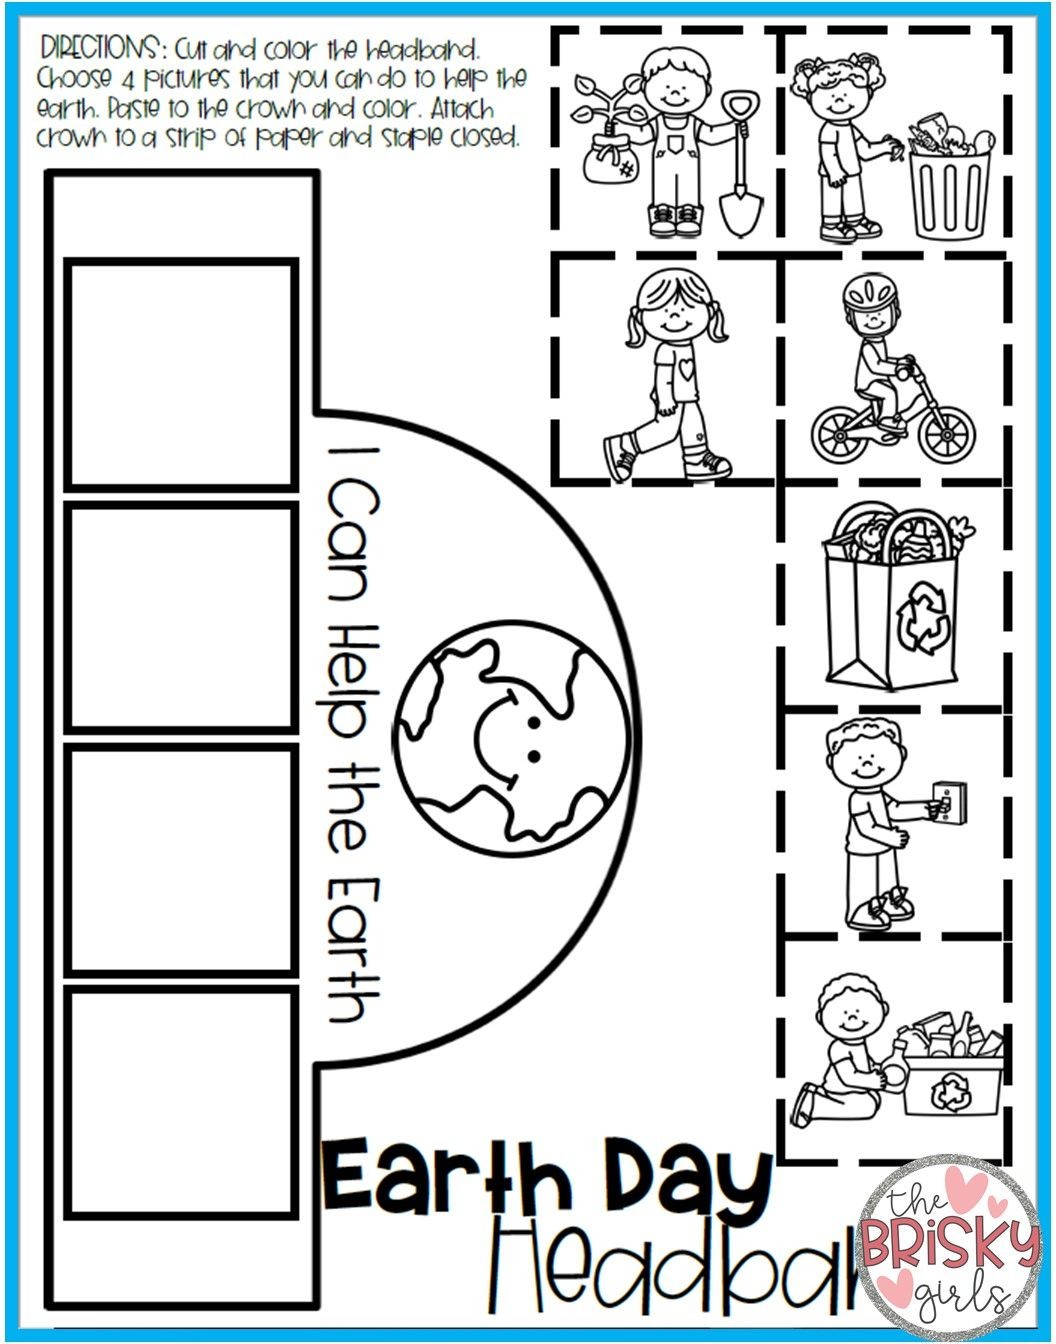 Earth Day Activities Earth Day Activities For Kids Earth